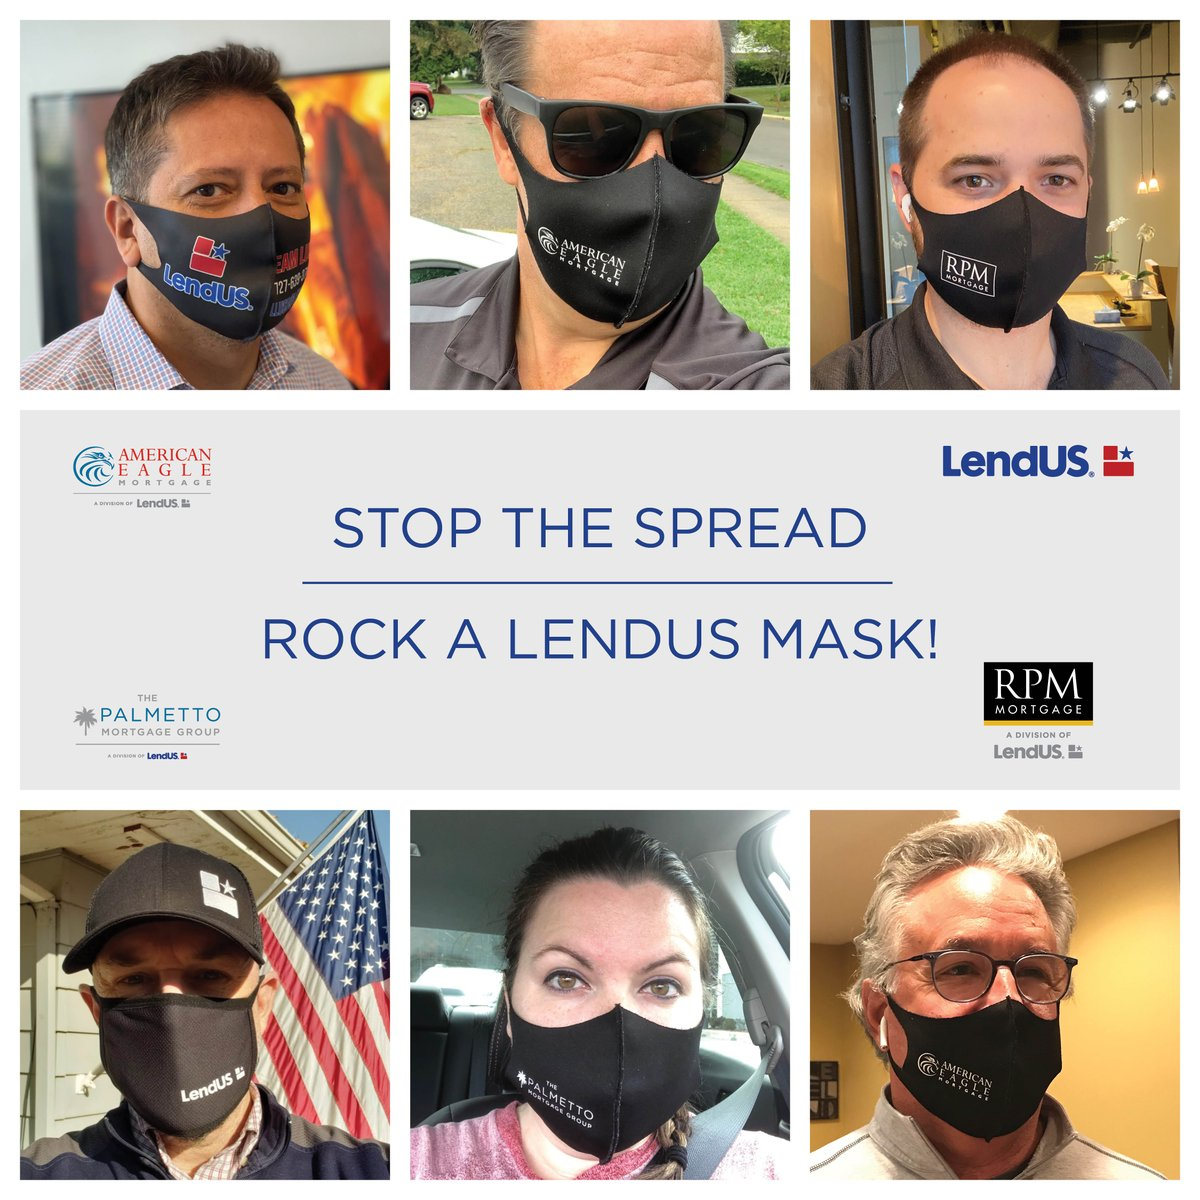 Our company places a high priority on ensuring that our employees are safe and healthy, and one way is through wearing masks! Check out some of our employees sporting their branded masks! #lendusfamily #lendus #rpmmortgage #americaneaglemortgage #palmettogroup https://t.co/WOOVAjFxi2